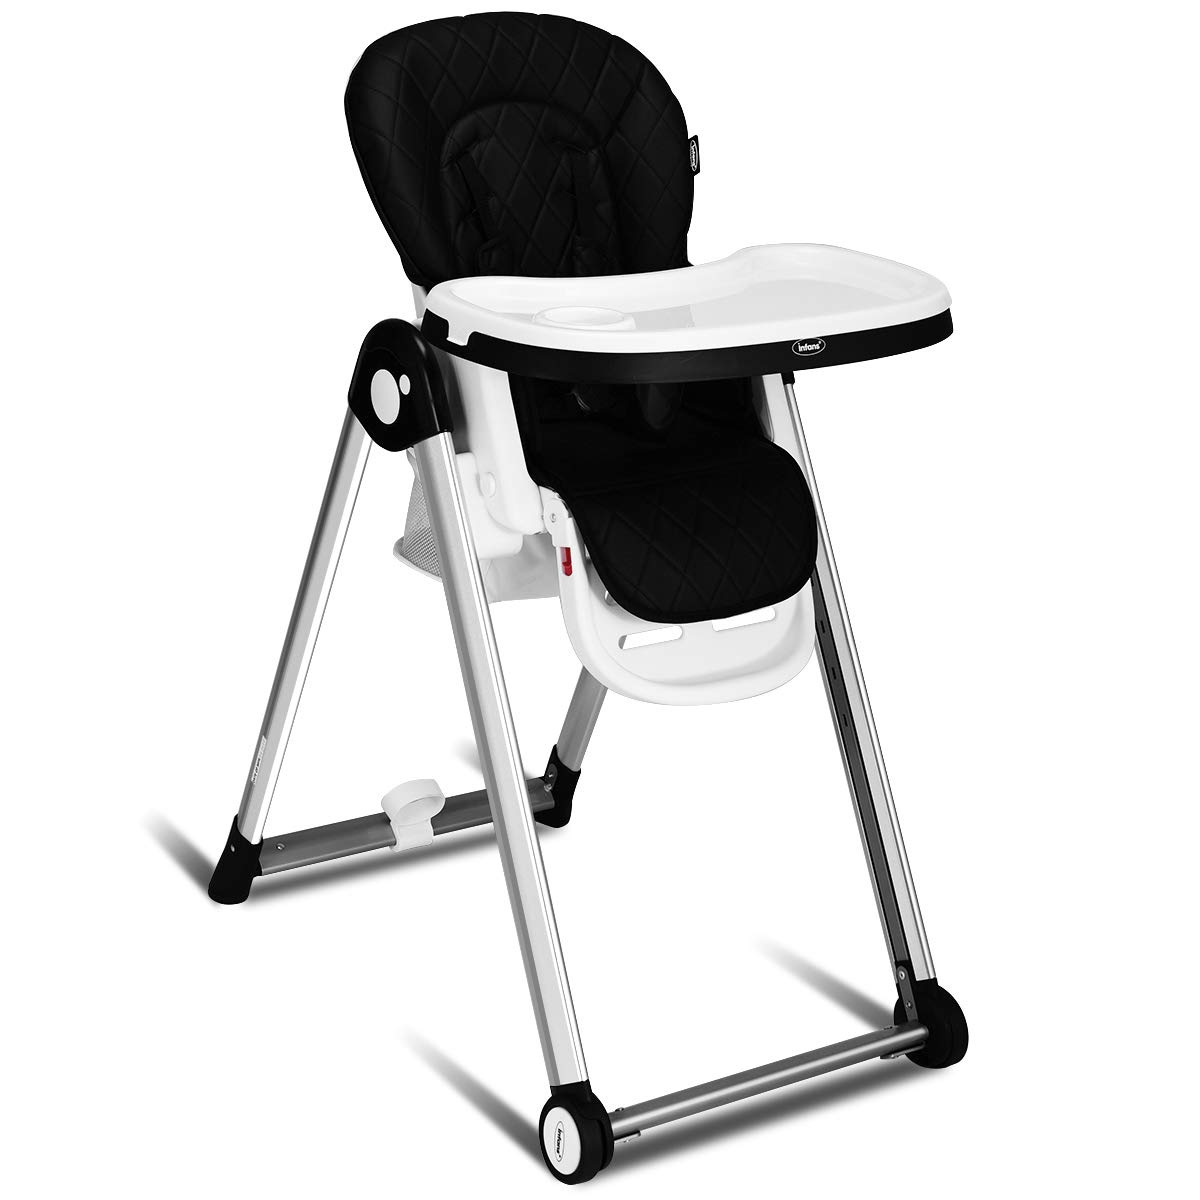 INFANS Folding High Chair for Babies &Toddlers, Space Saving with Multiple Adjustable Backrest, Footrest & Seat Height, Front Wheels, Removable Trays, Detachable Cushion, Storage Basket (Black)